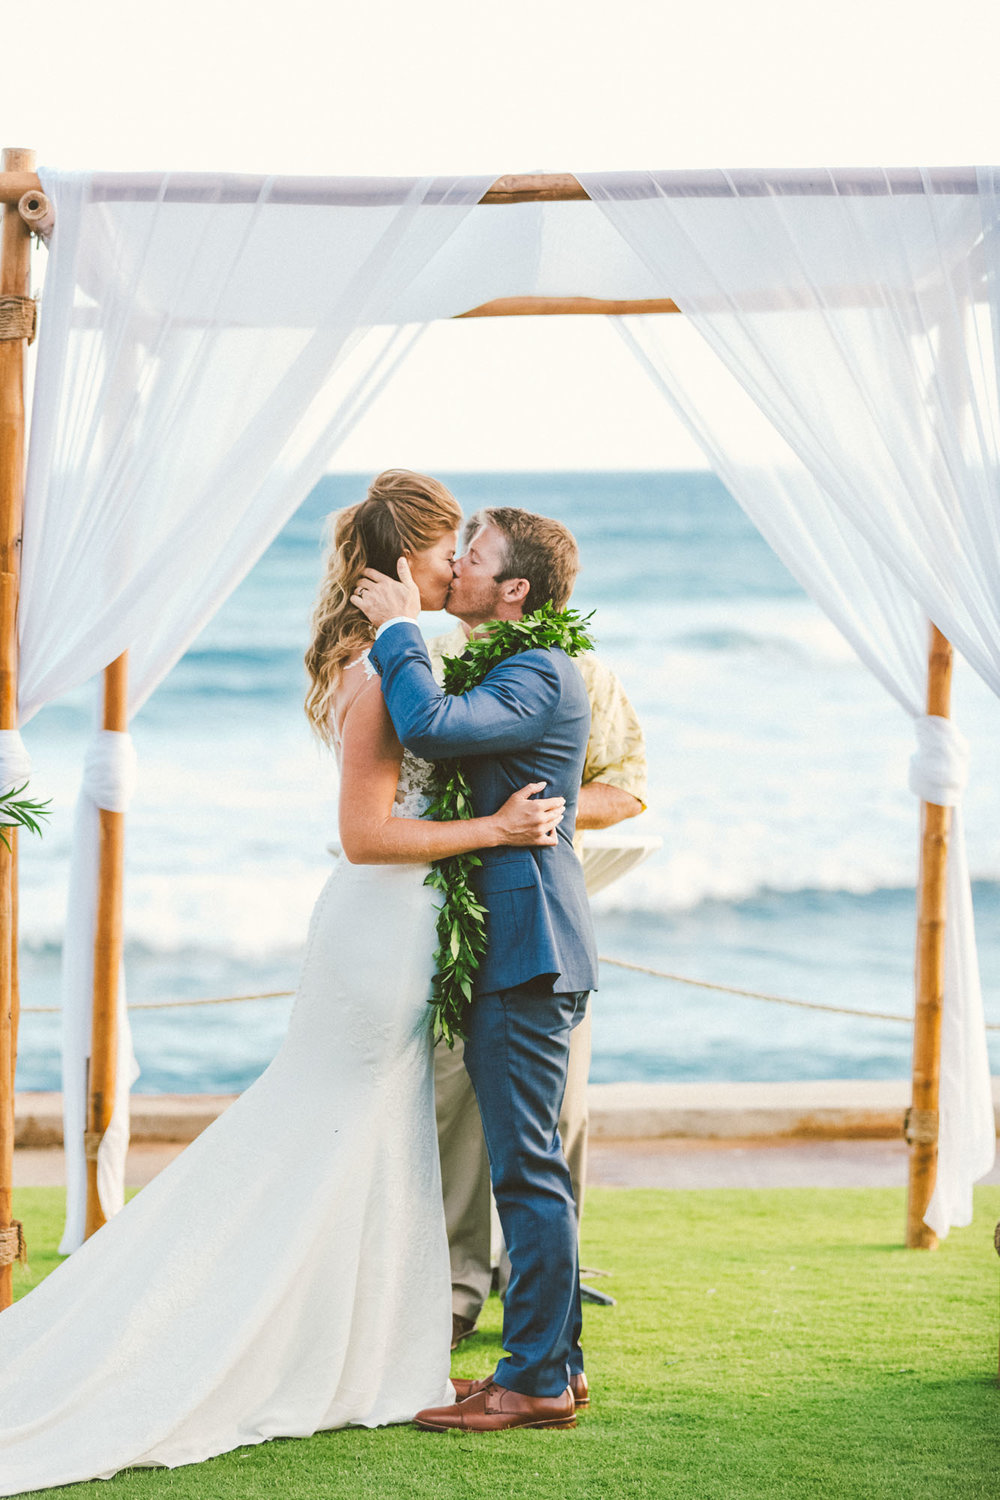 maui wedding photographer_146.jpg